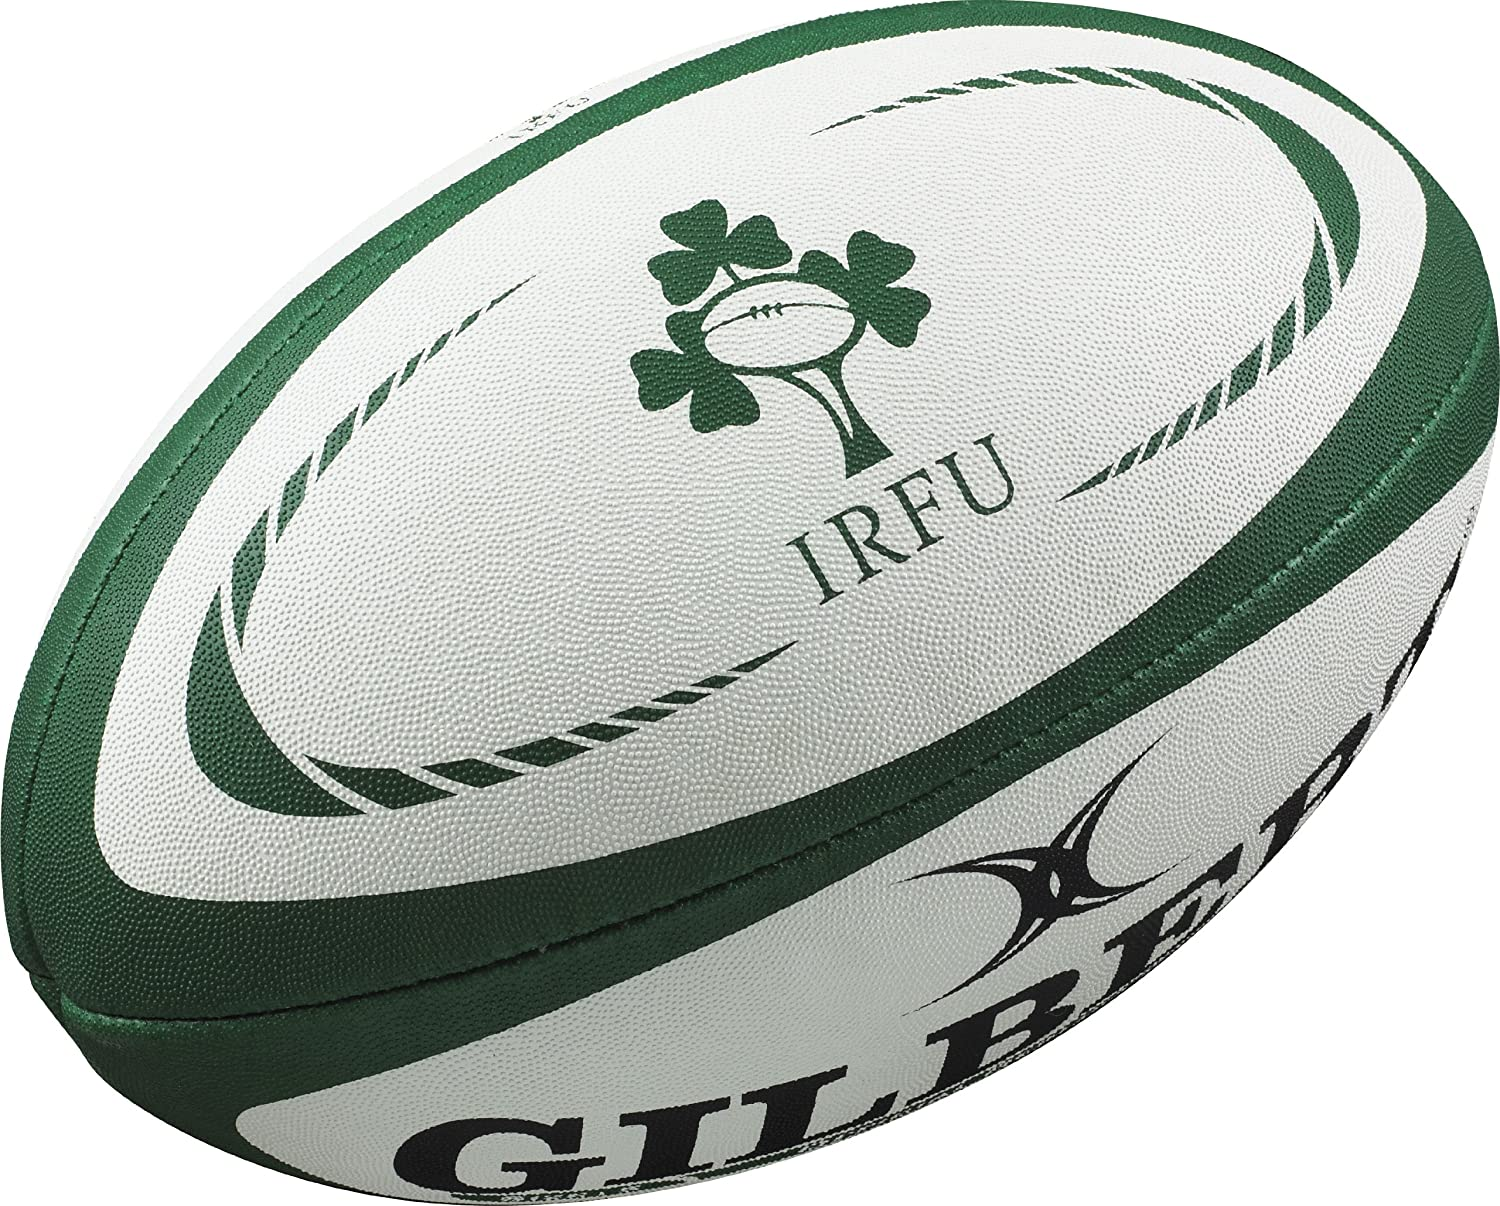 Gilbert Irlande Ré plique Grays